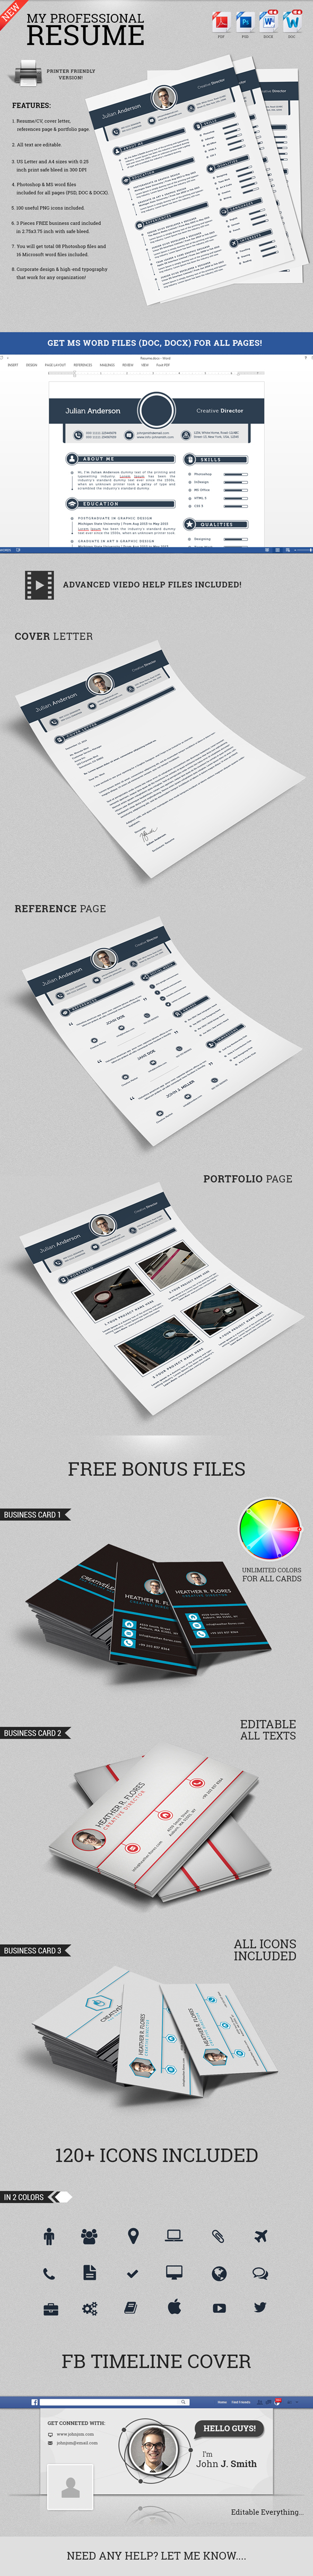 my professional resume cv set on behance the professional resume cv set template is designed to make your printing experience even better neatly designed layout cmyk color and layer